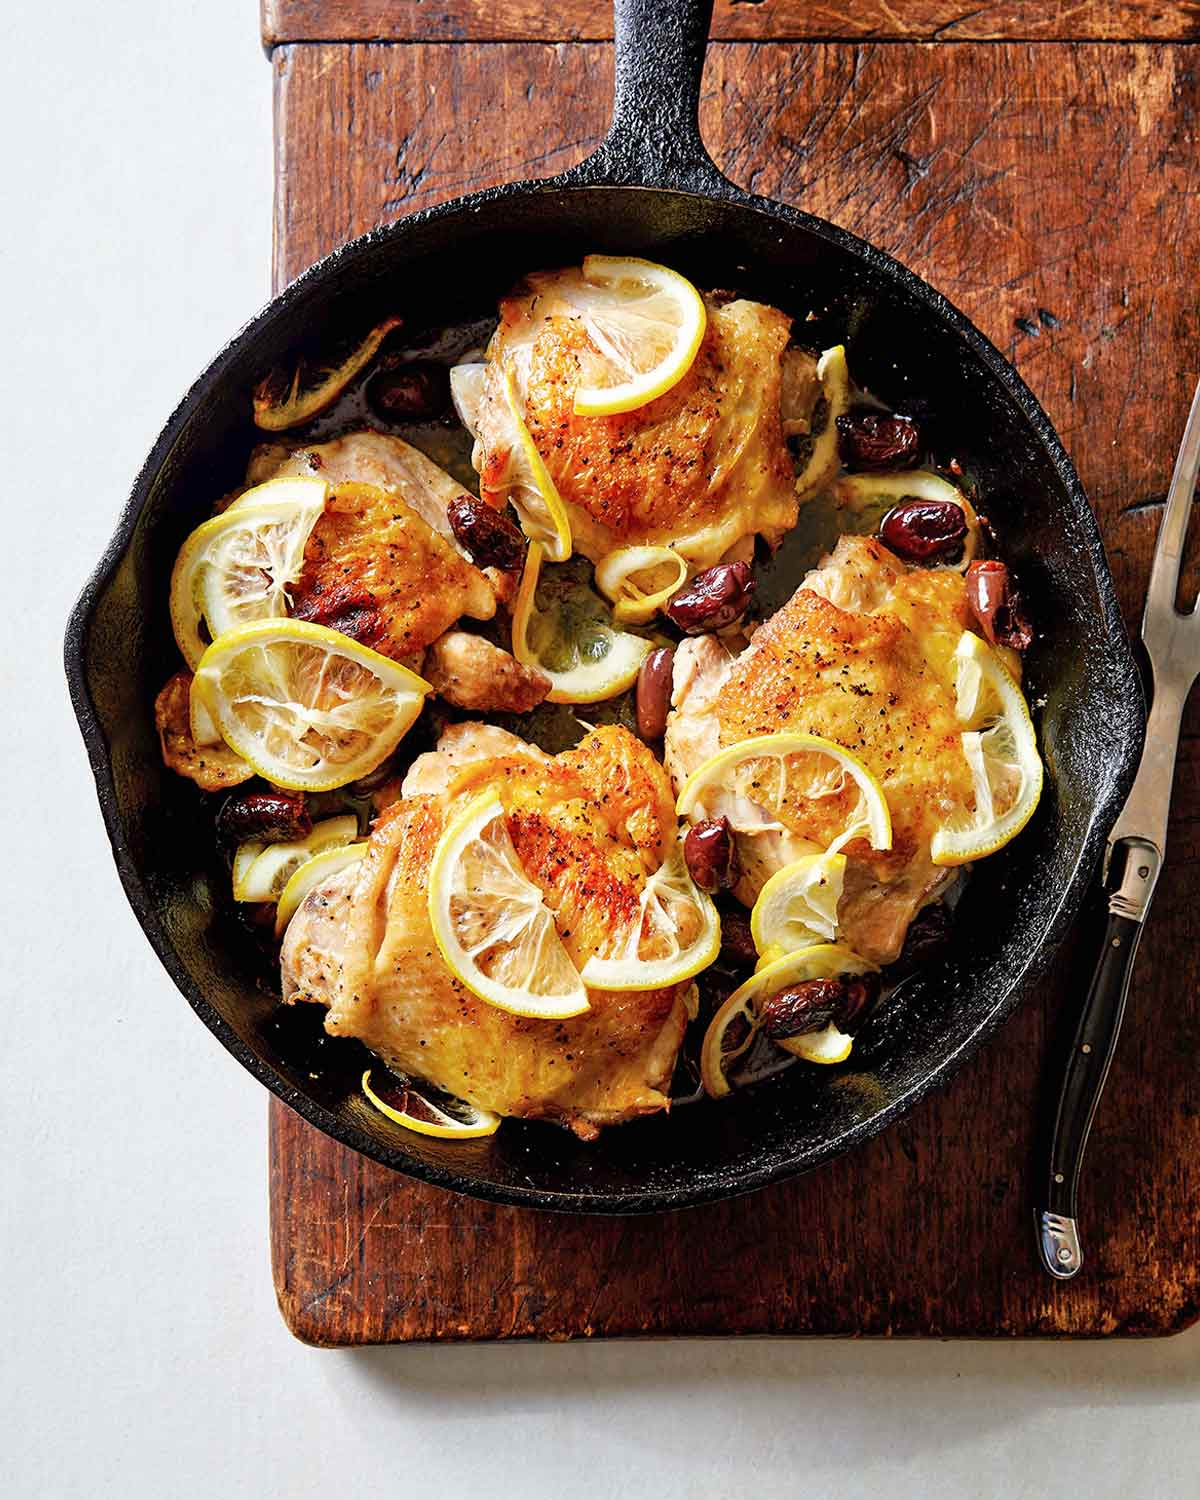 Four roast chicken thighs with lemon in a cast-iron skillet set on a wooden board with a meat fork resting beside it.